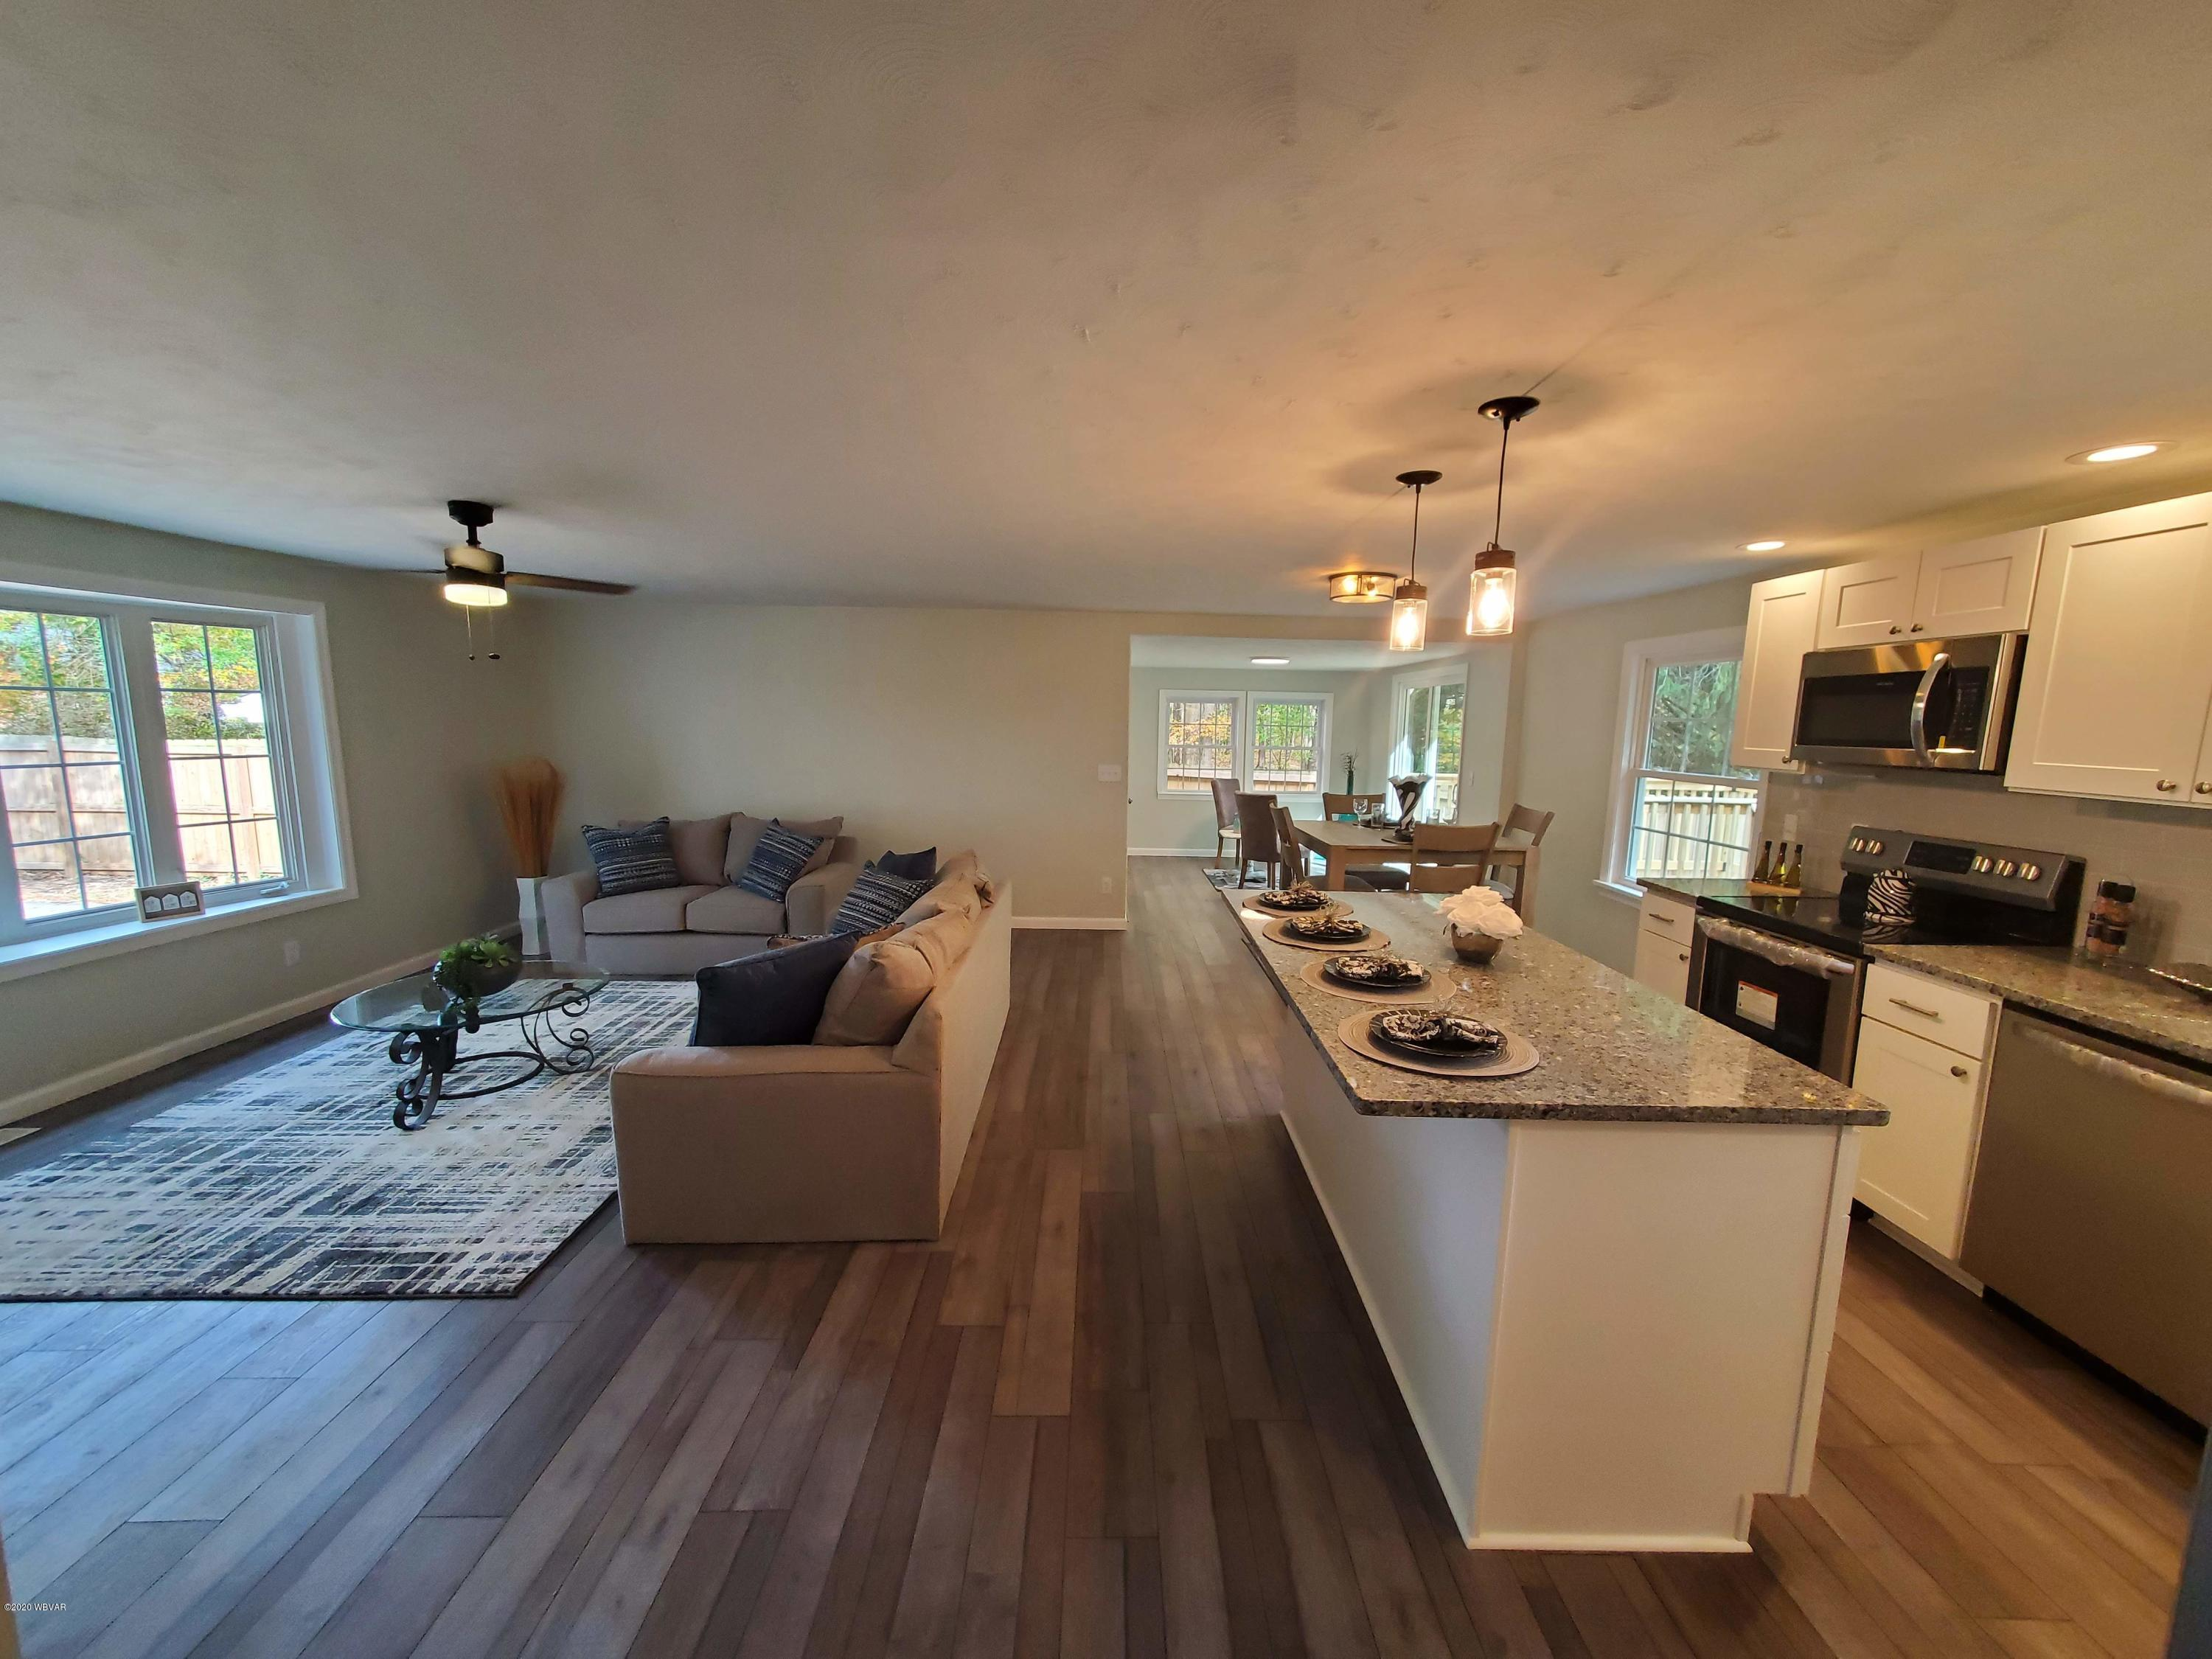 1524 OAKES AVENUE, Williamsport, PA 17701, 4 Bedrooms Bedrooms, ,3 BathroomsBathrooms,Residential,For sale,OAKES,WB-91400